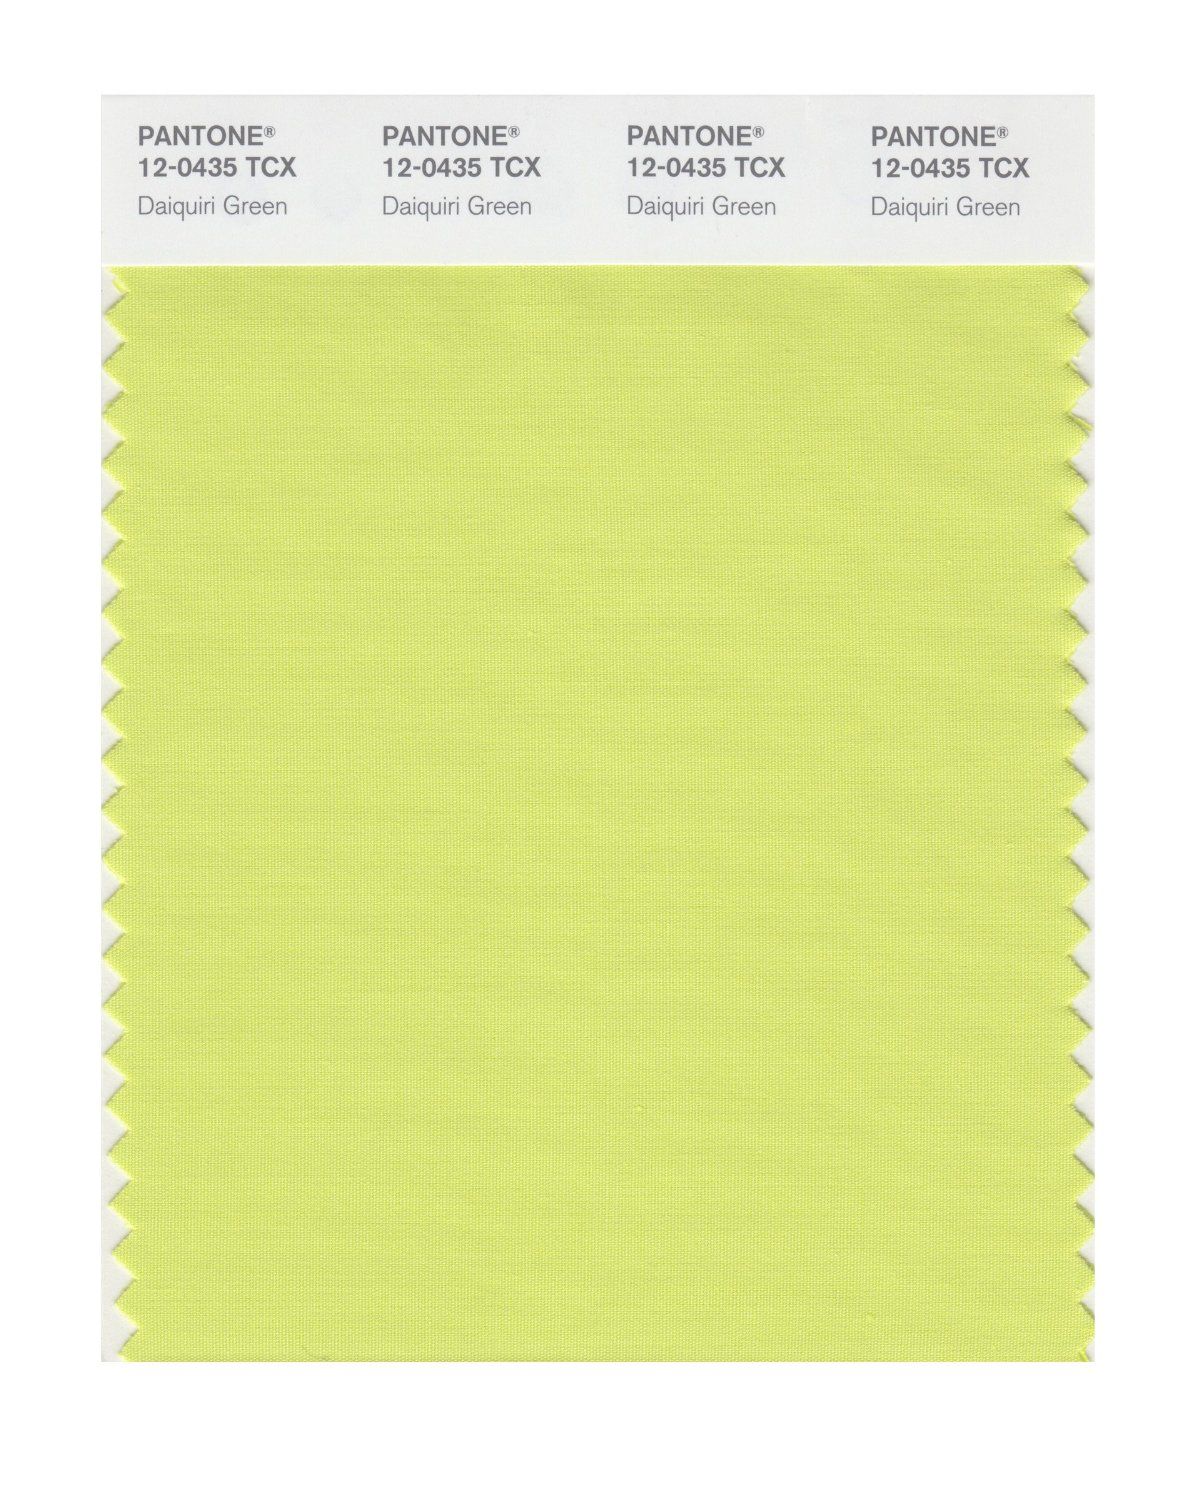 Pantone Smart Swatch 12-0435 Daiquiri Green